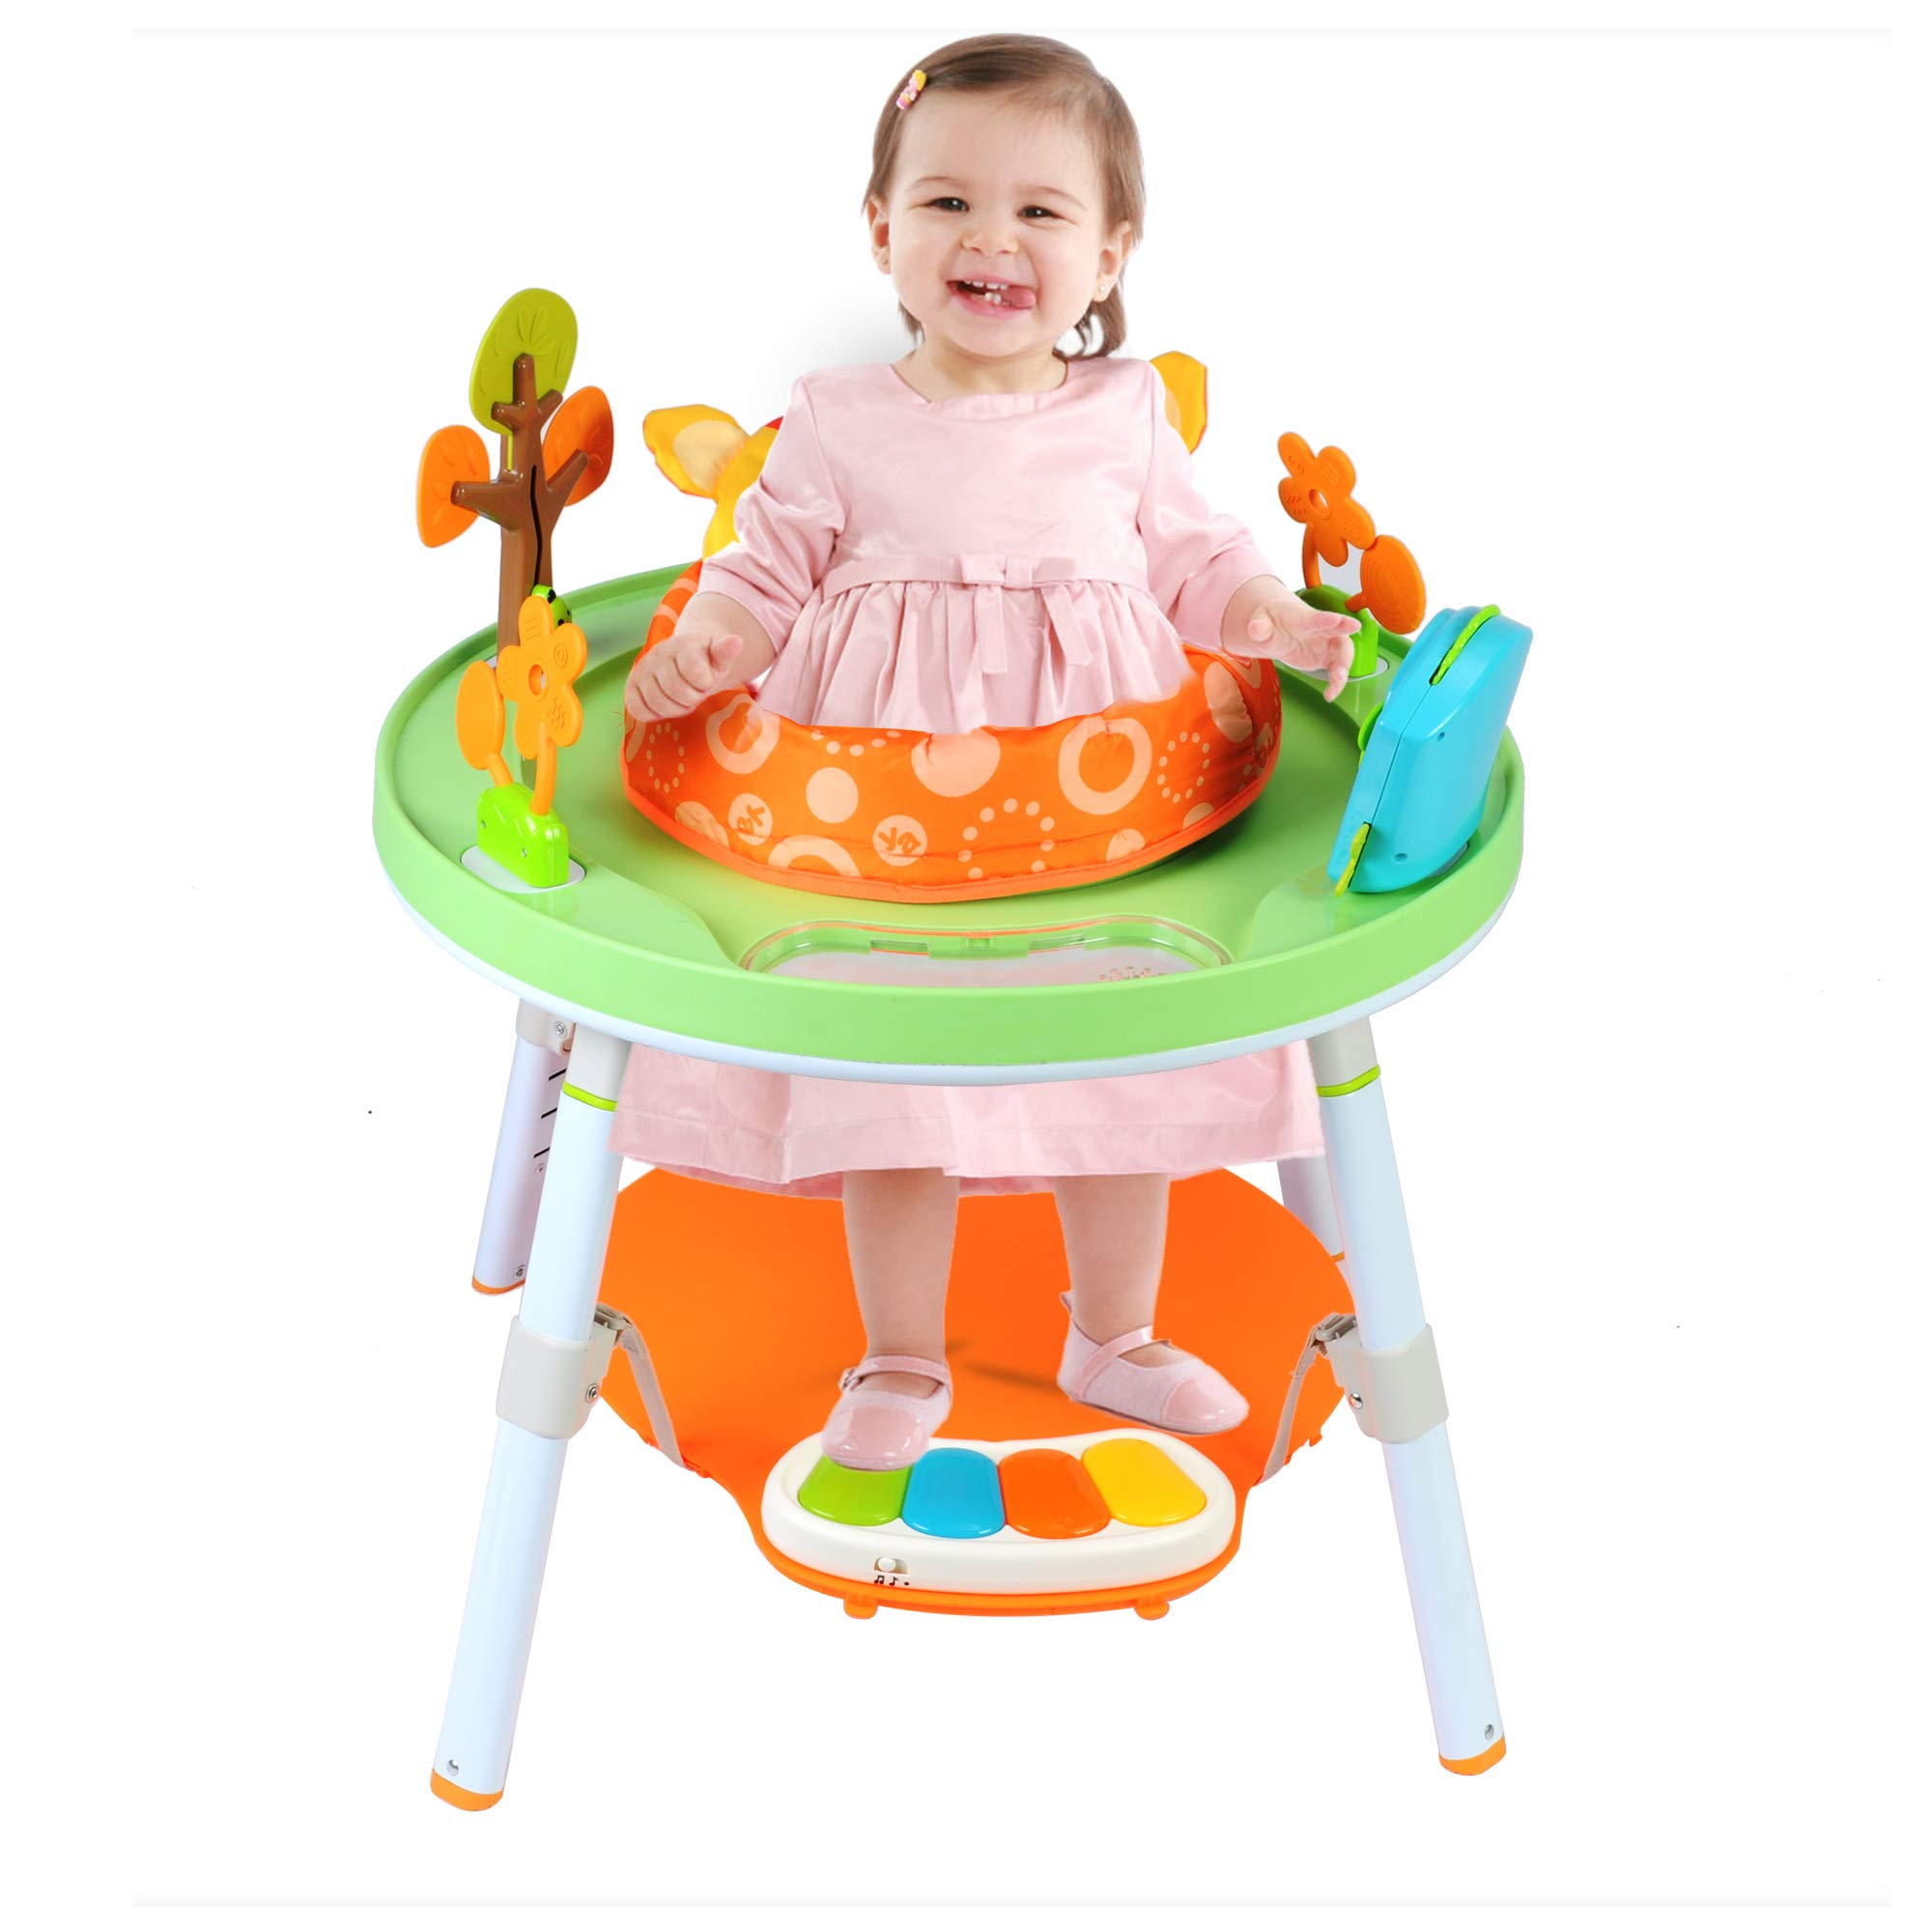 Dporticus Baby 3-Stage Jump Entertainers Activity Center Playful Multi-Function Jump&Rocking Chair with Toys and Music,Orange